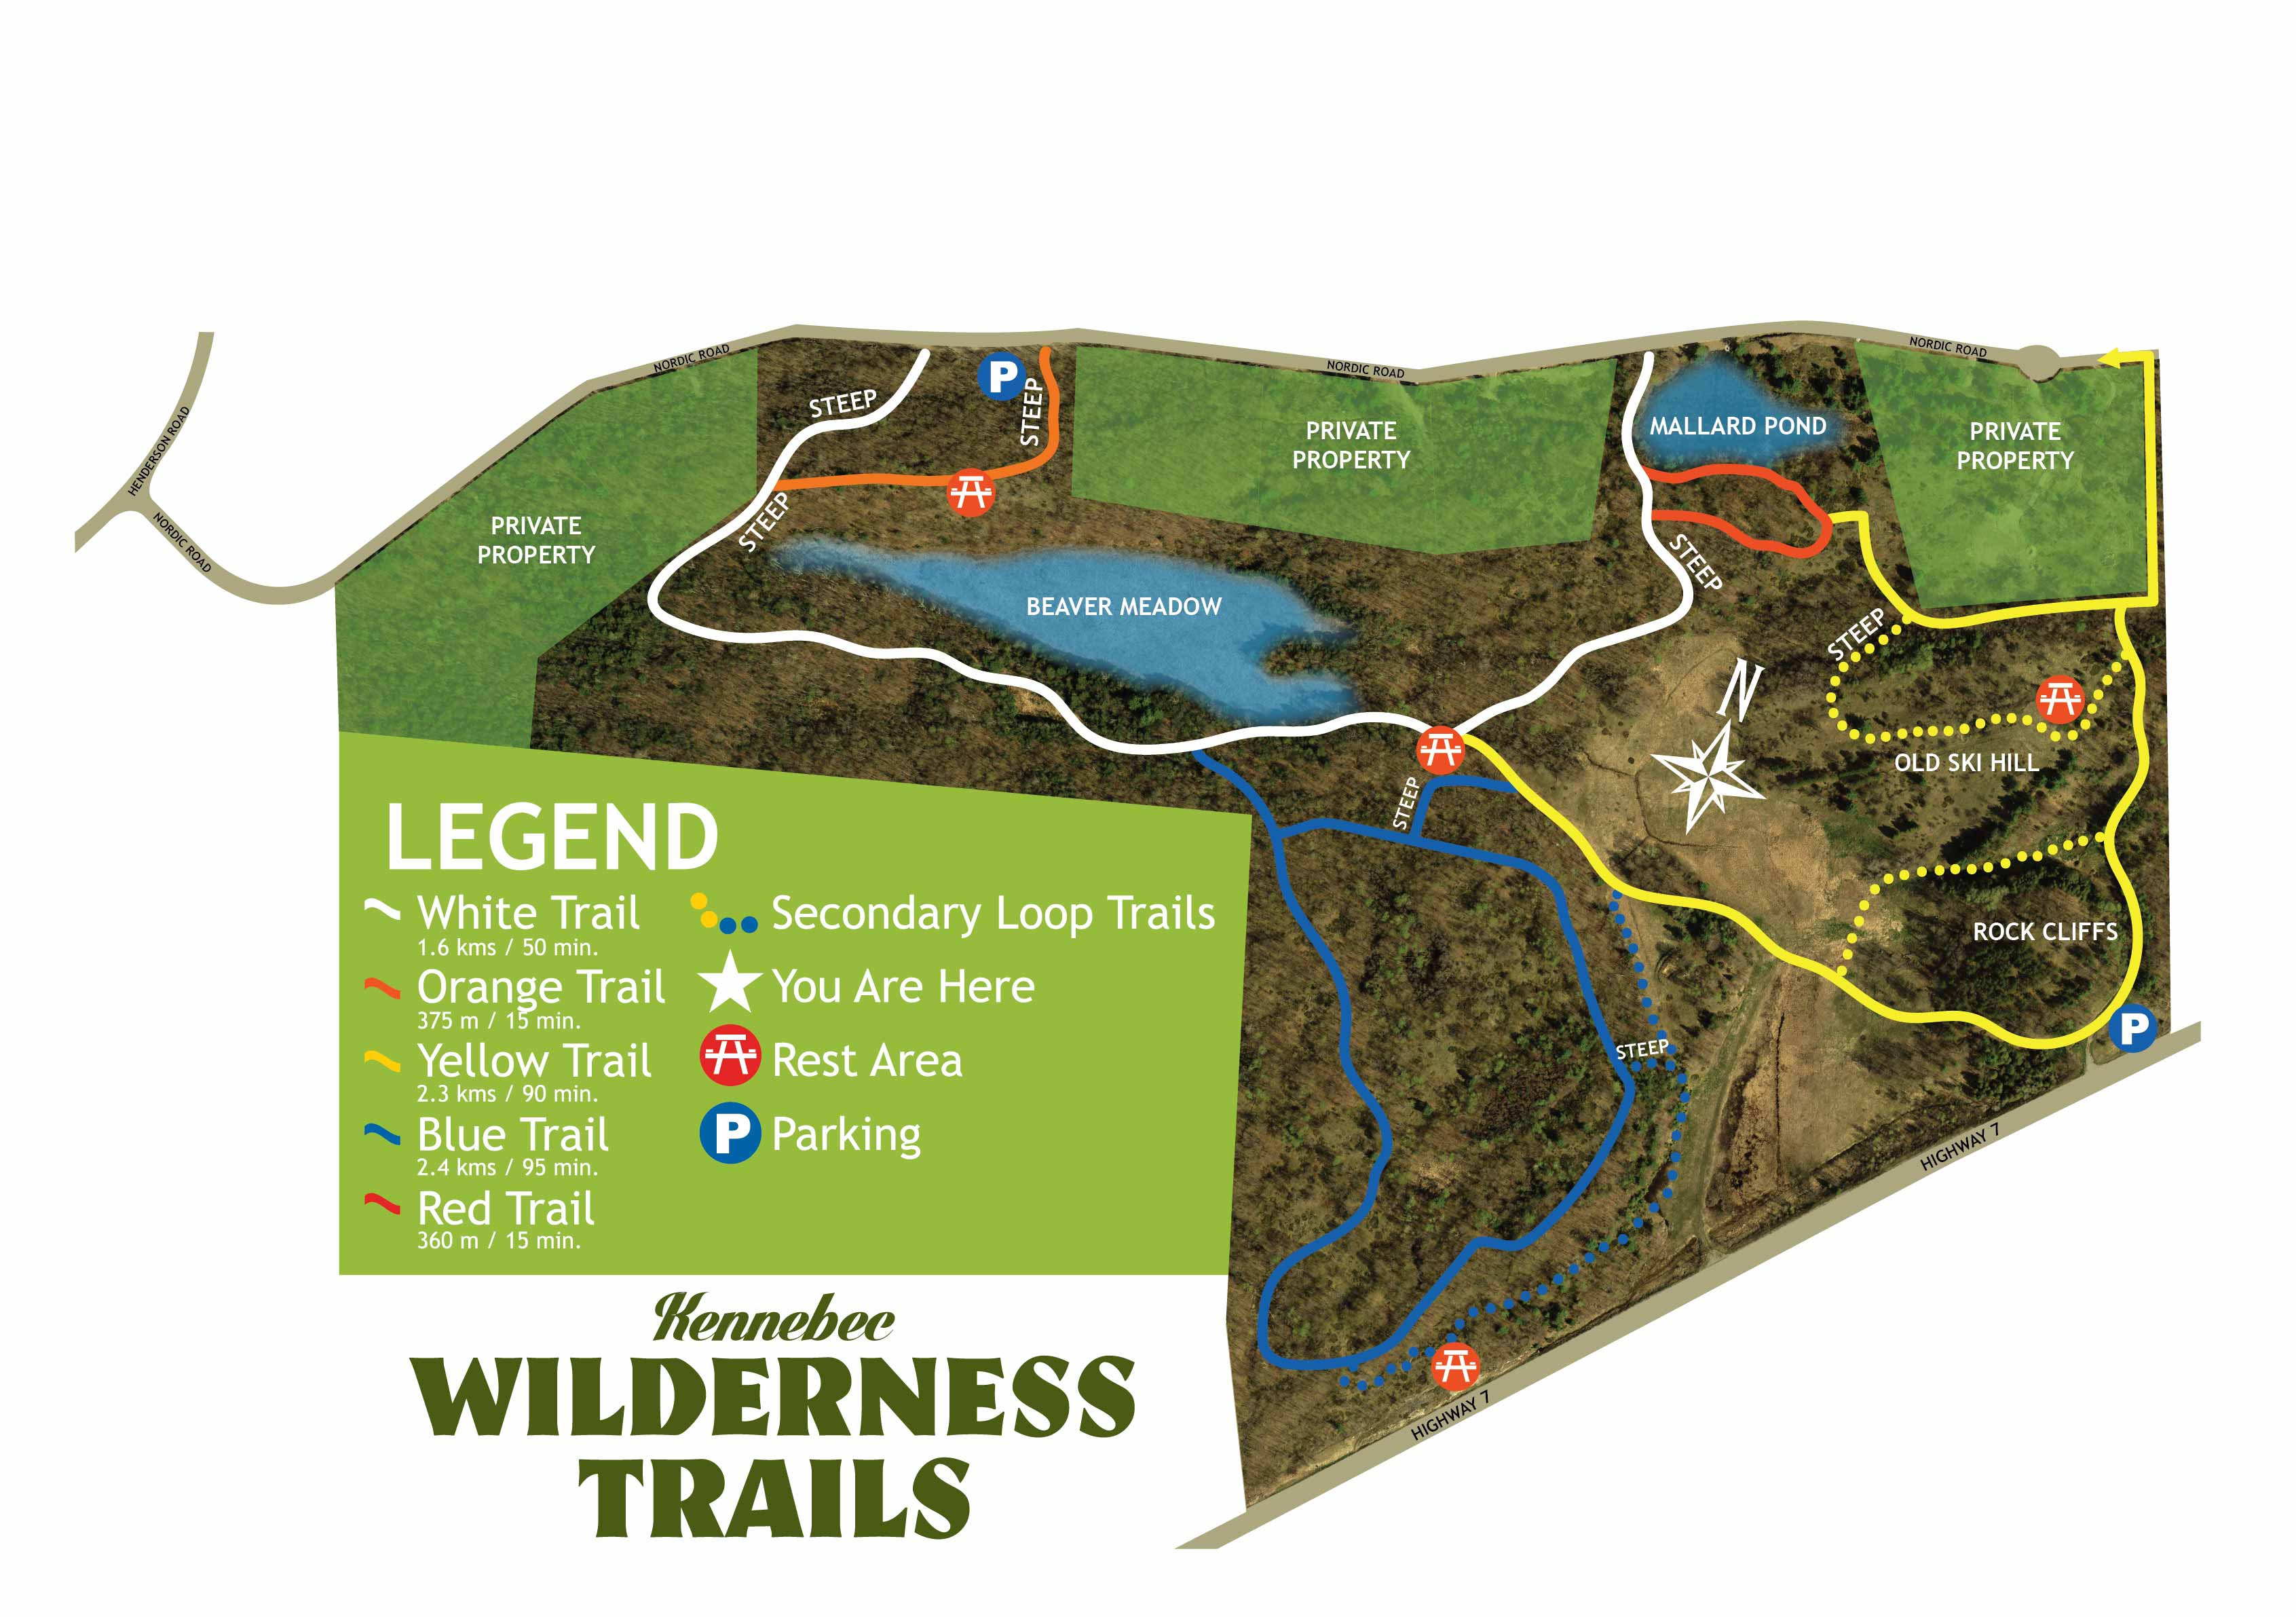 Kennebec Wilderness trails map